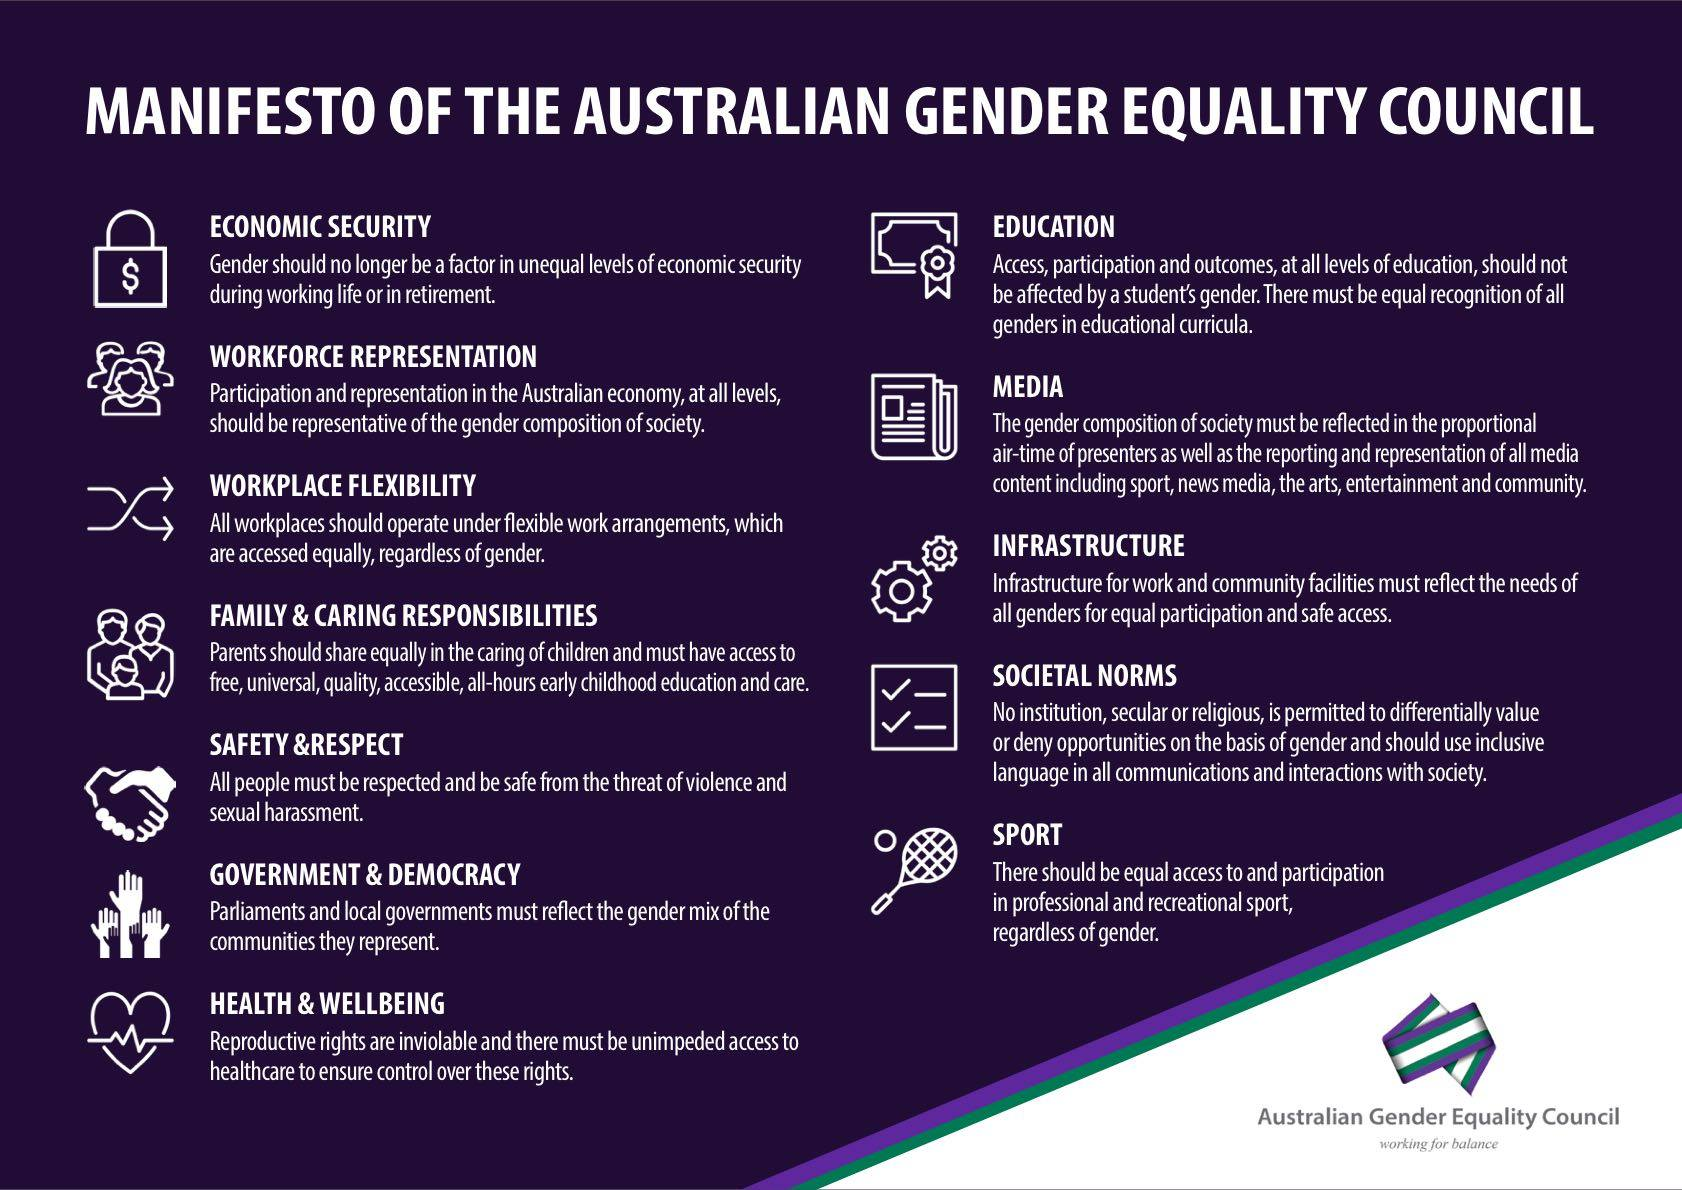 Manifesto of the Australian Gender Equality Council